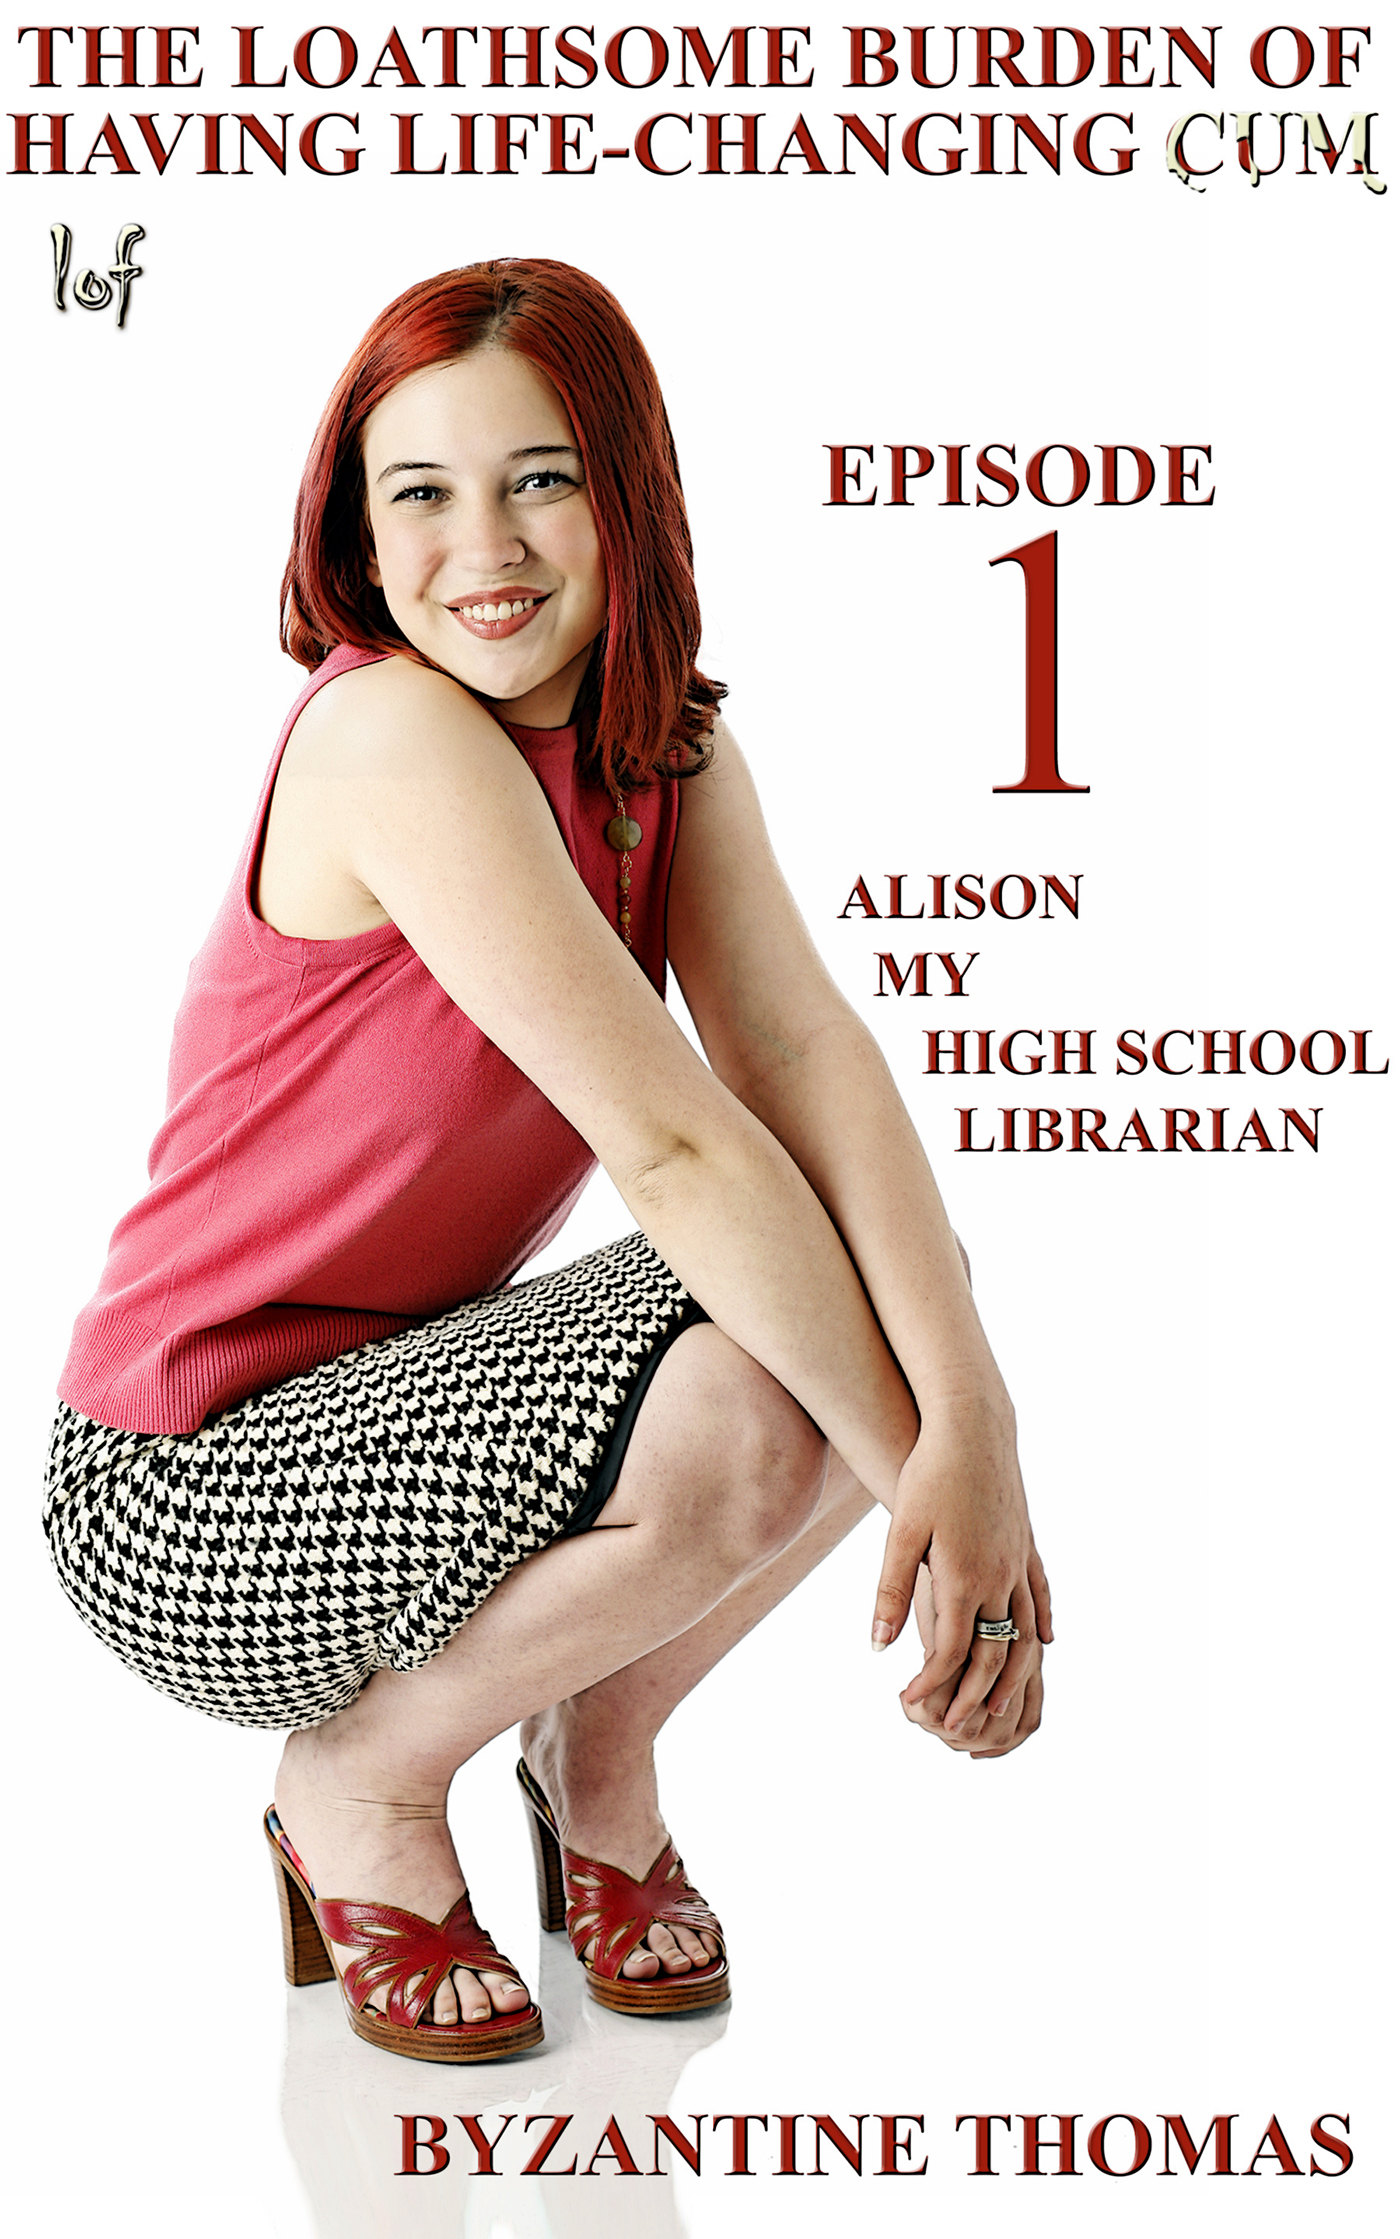 LOF New Release: The Loathsome Burden Of Having Life-Changing Cum: Episode 1: Alison (My High School Librarian)